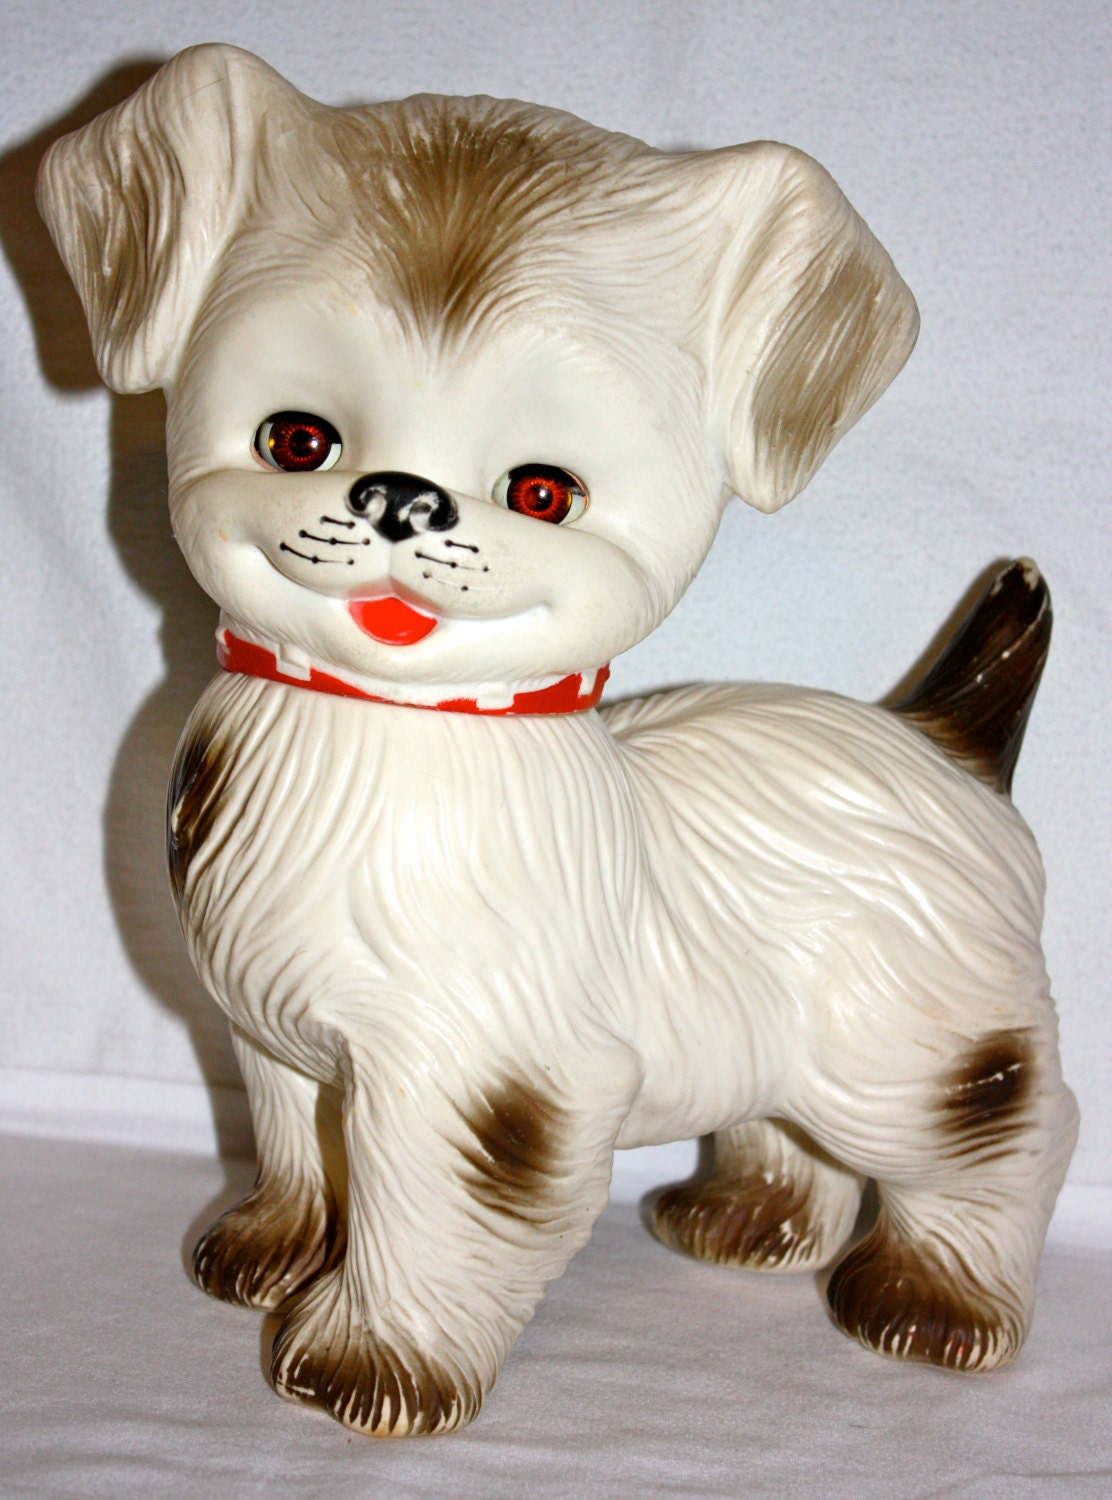 Vintage 1960s Alan Jay Plastic Squeak Toy Dog With Eyes Open